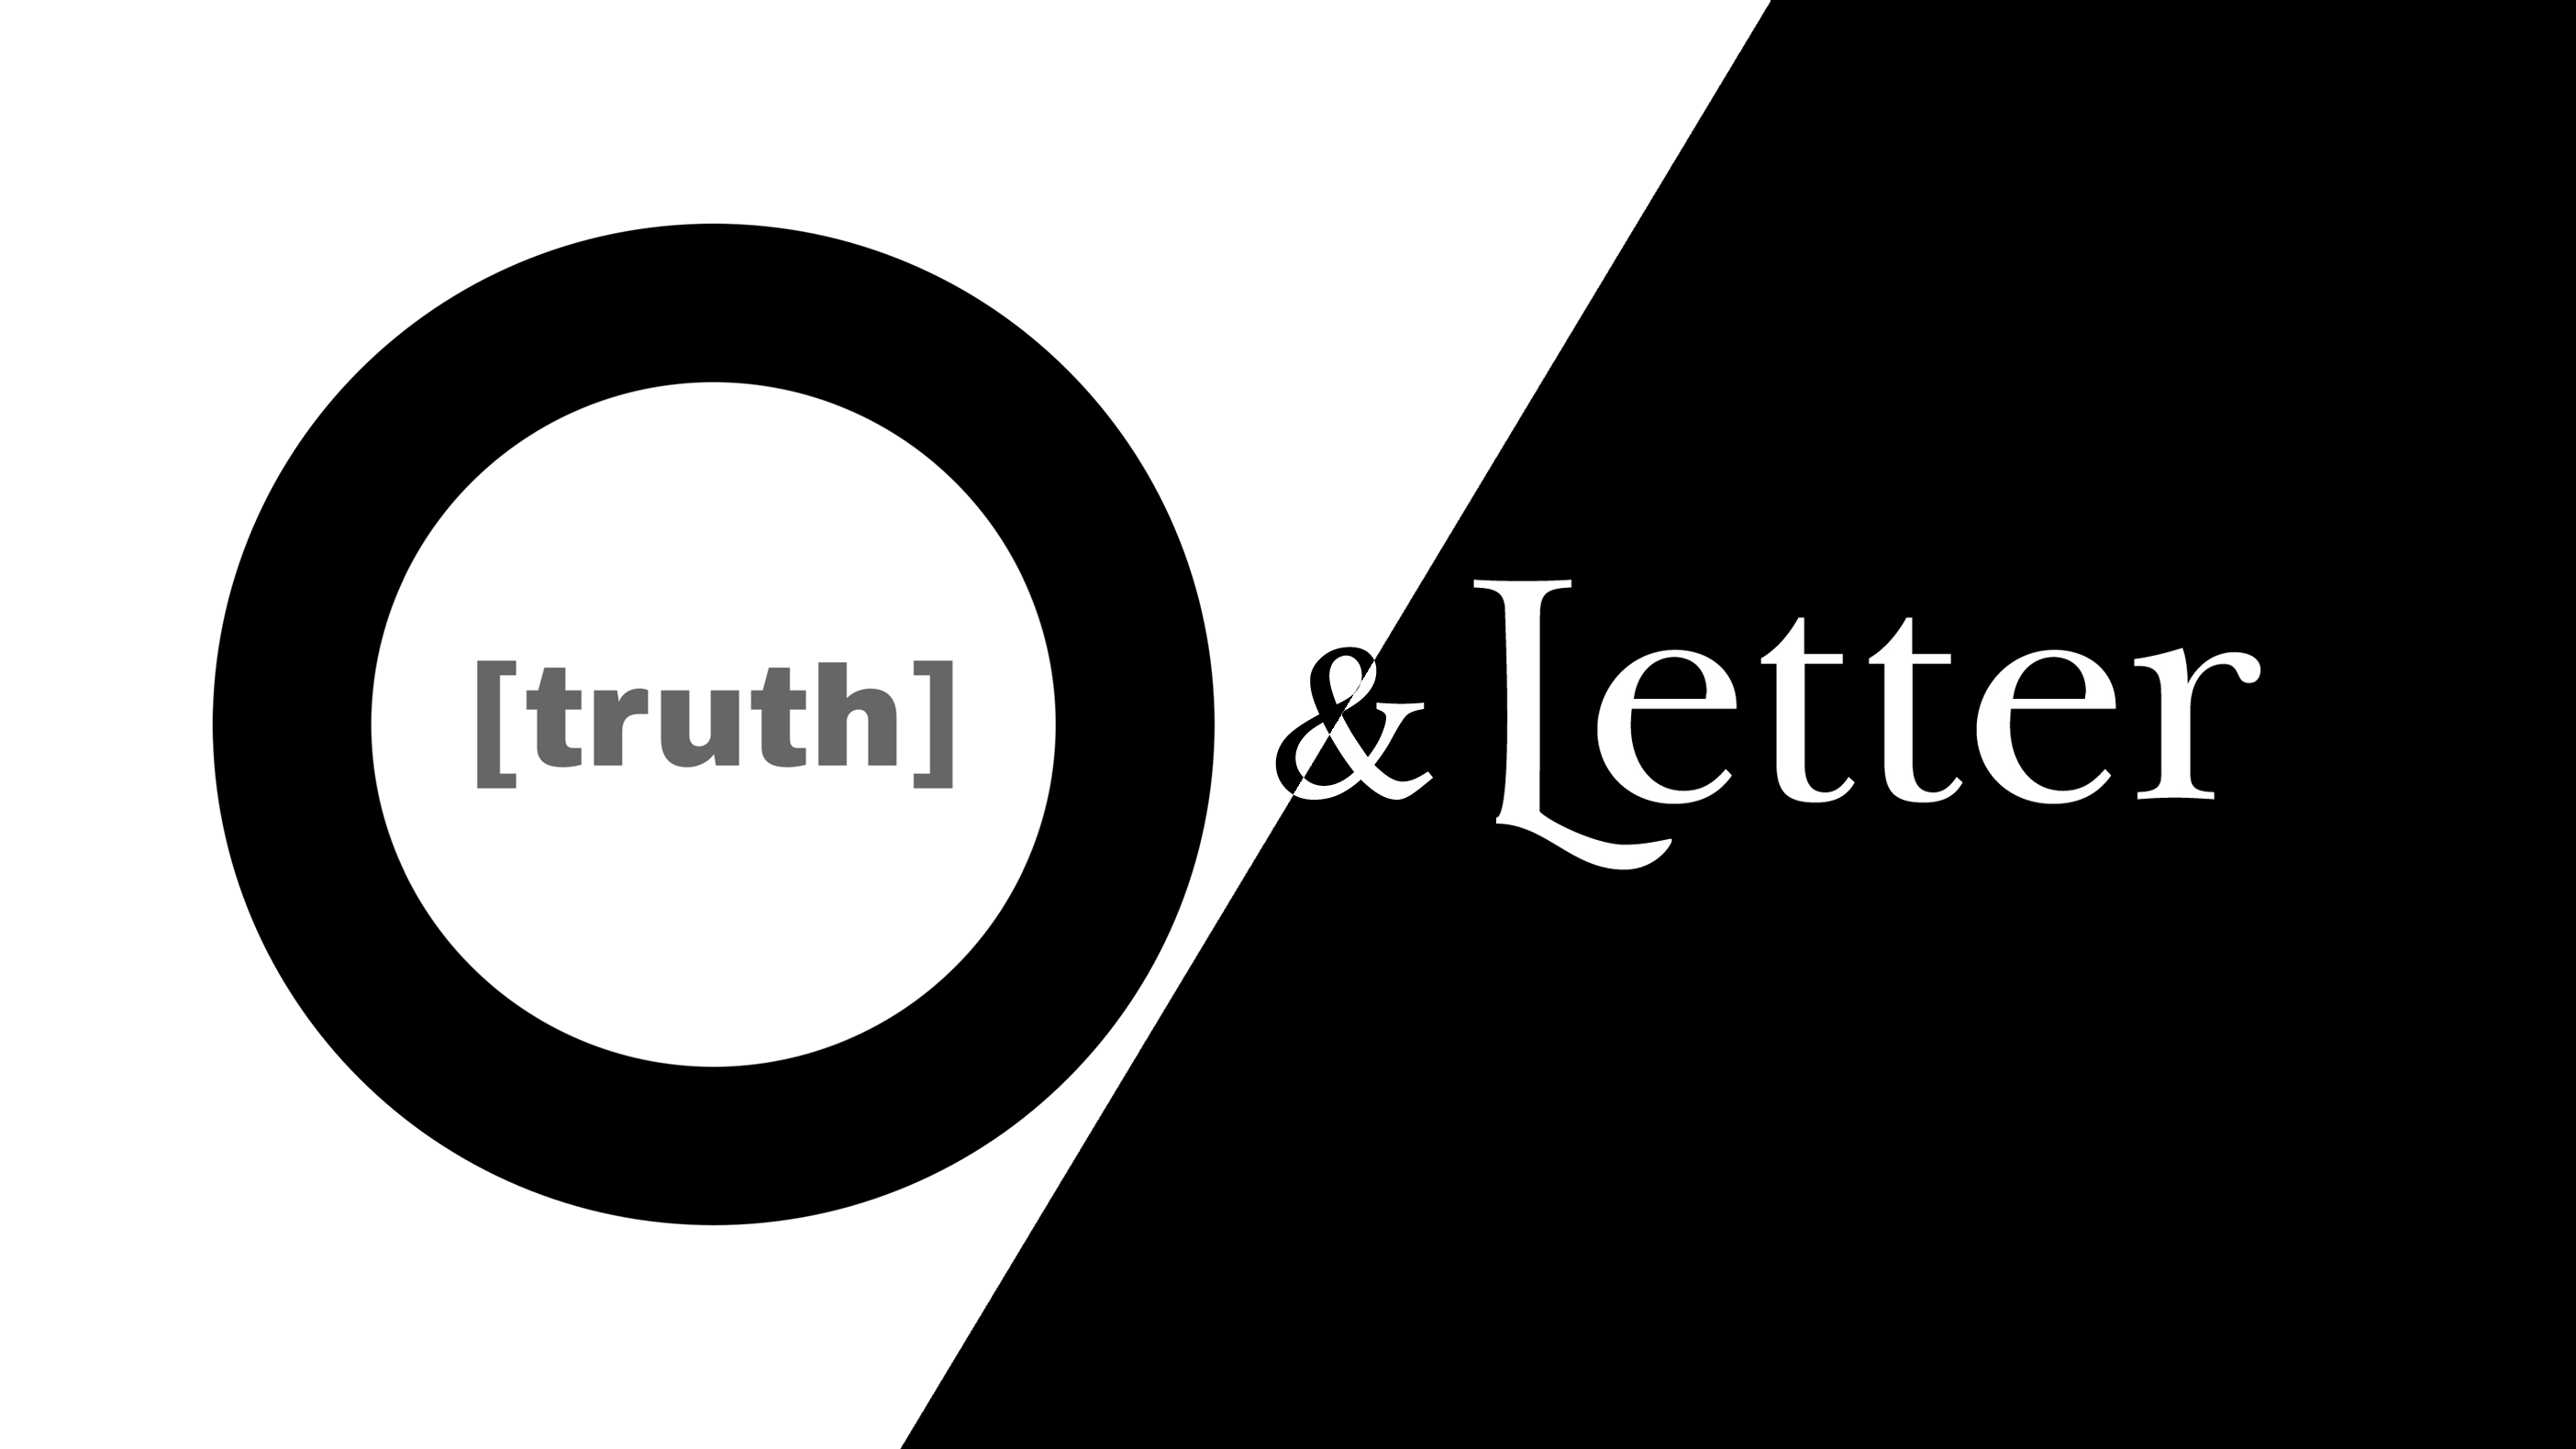 truth in between letter searching for context through by j d richmond truth in between medium truth in between letter searching